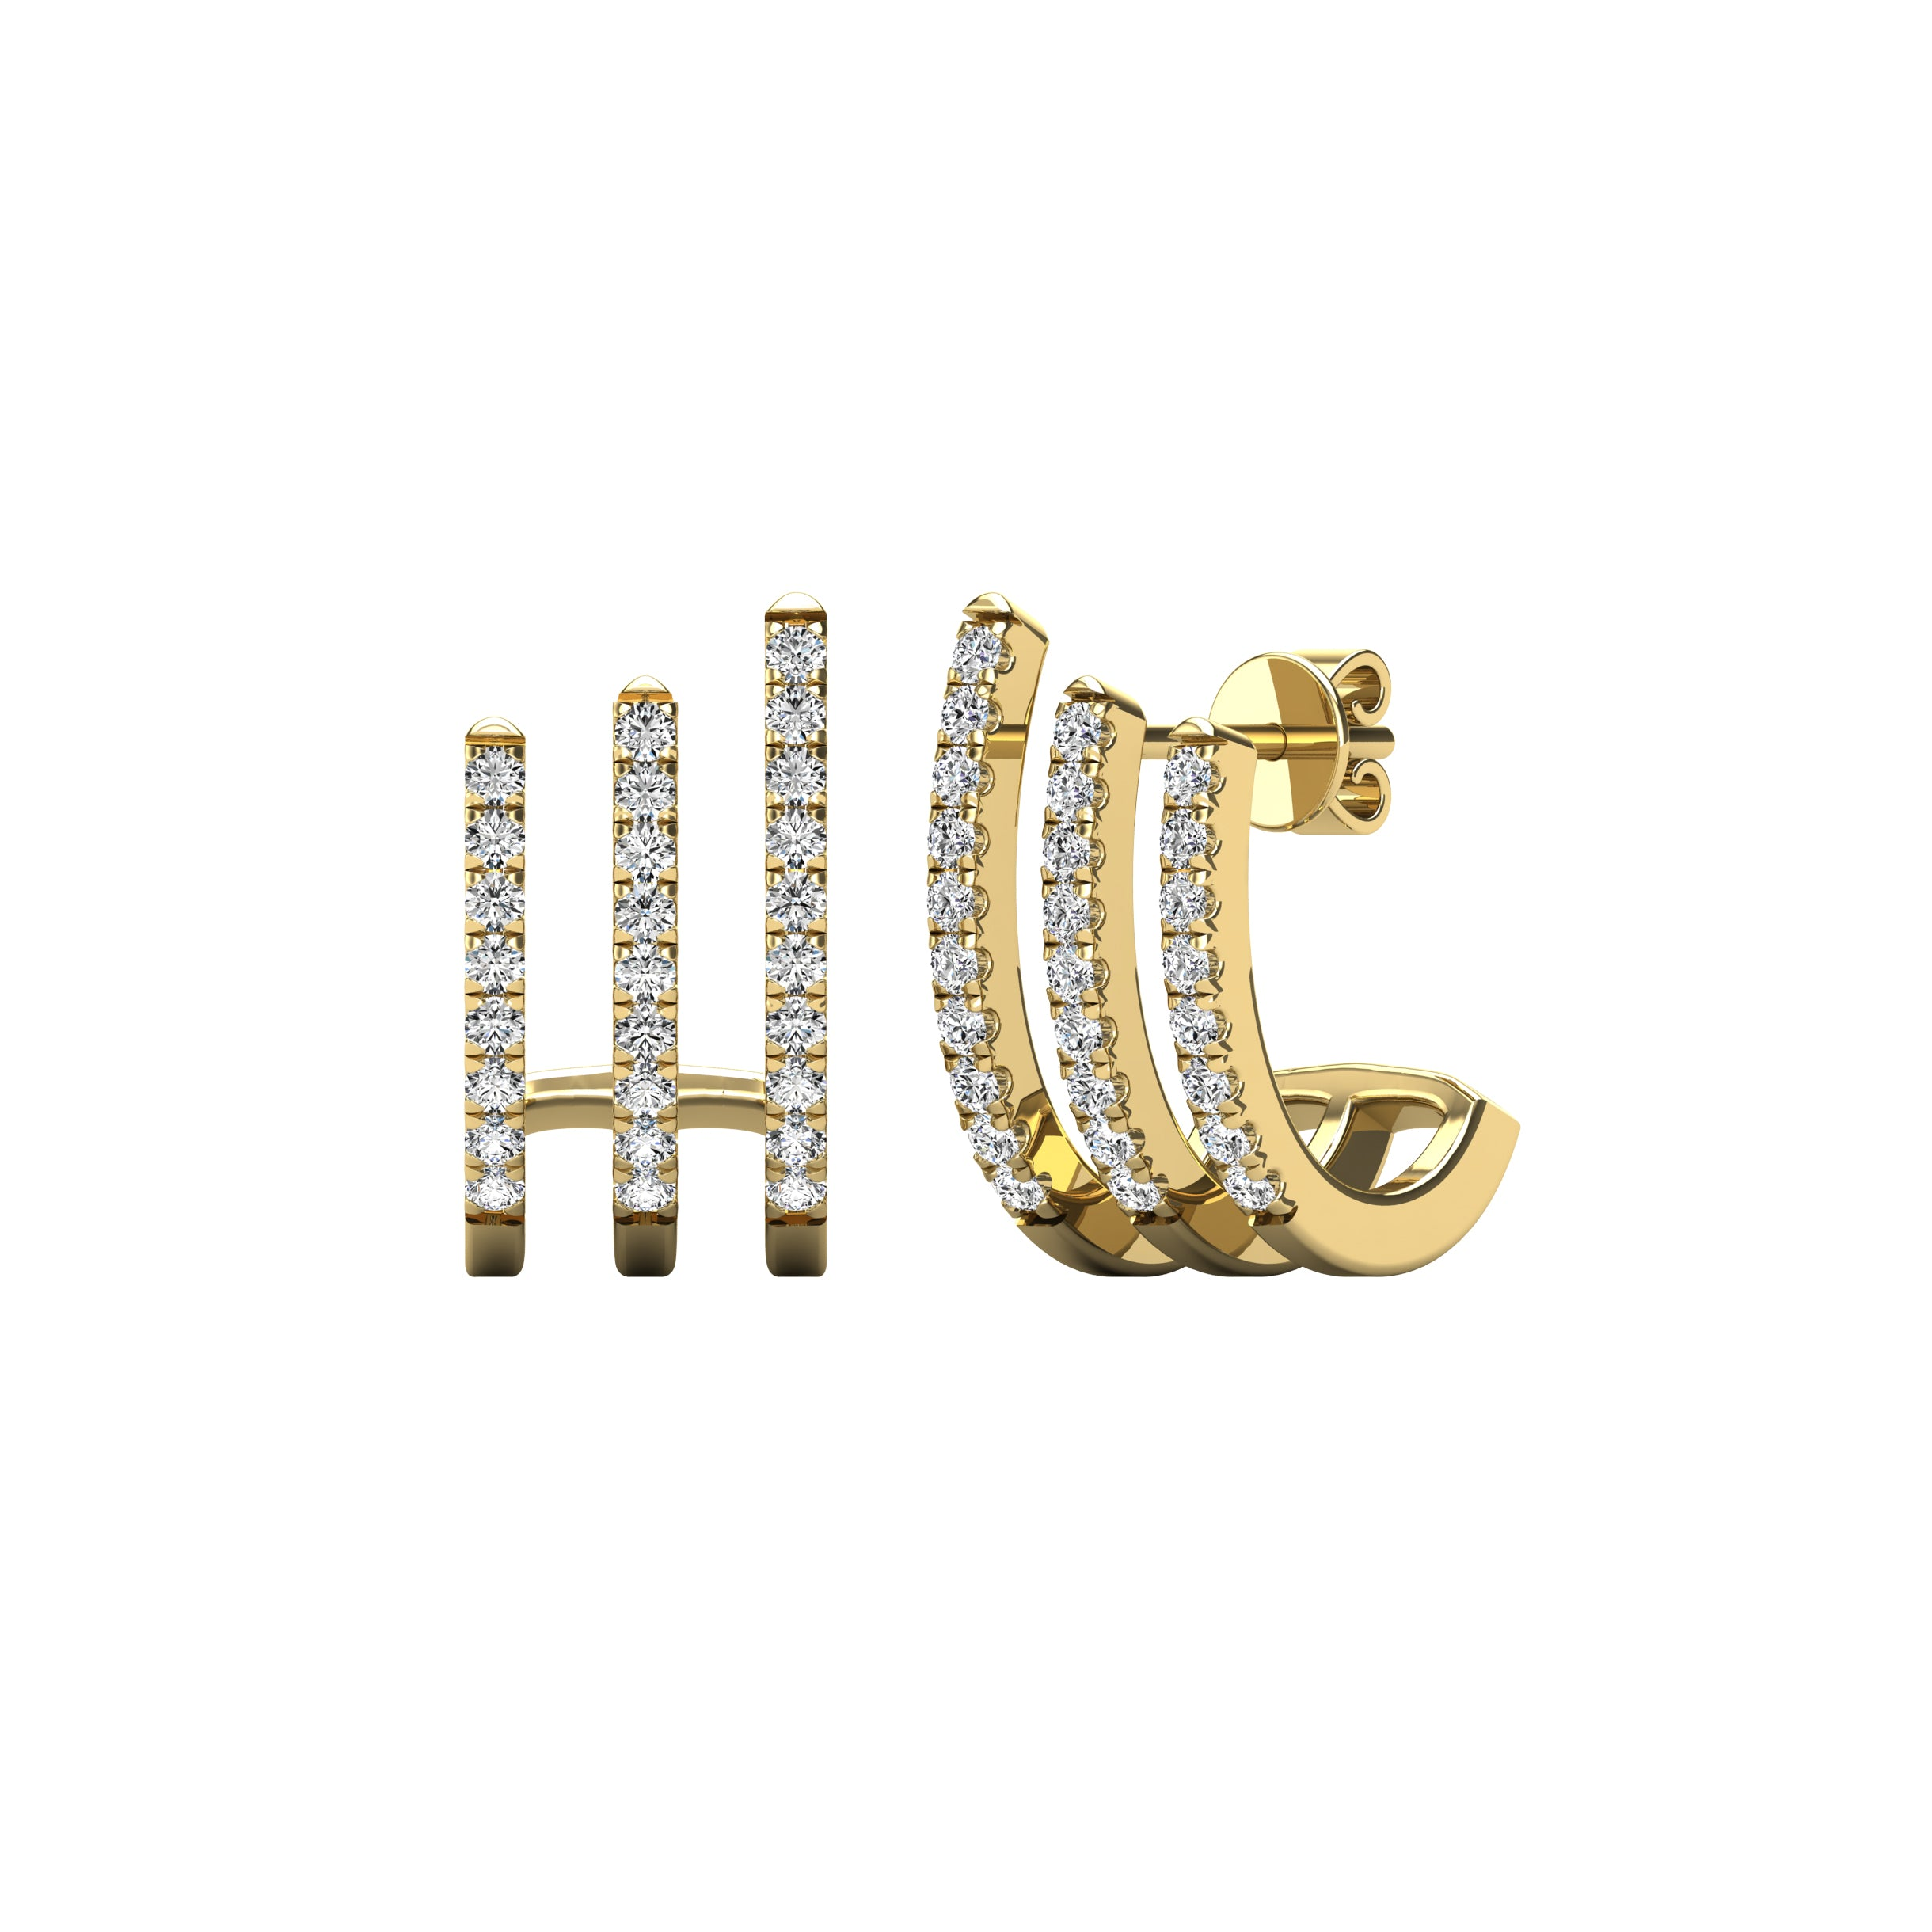 14K Yellow Gold 1/4 Ct.Tw. Diamond Fashion Earrings